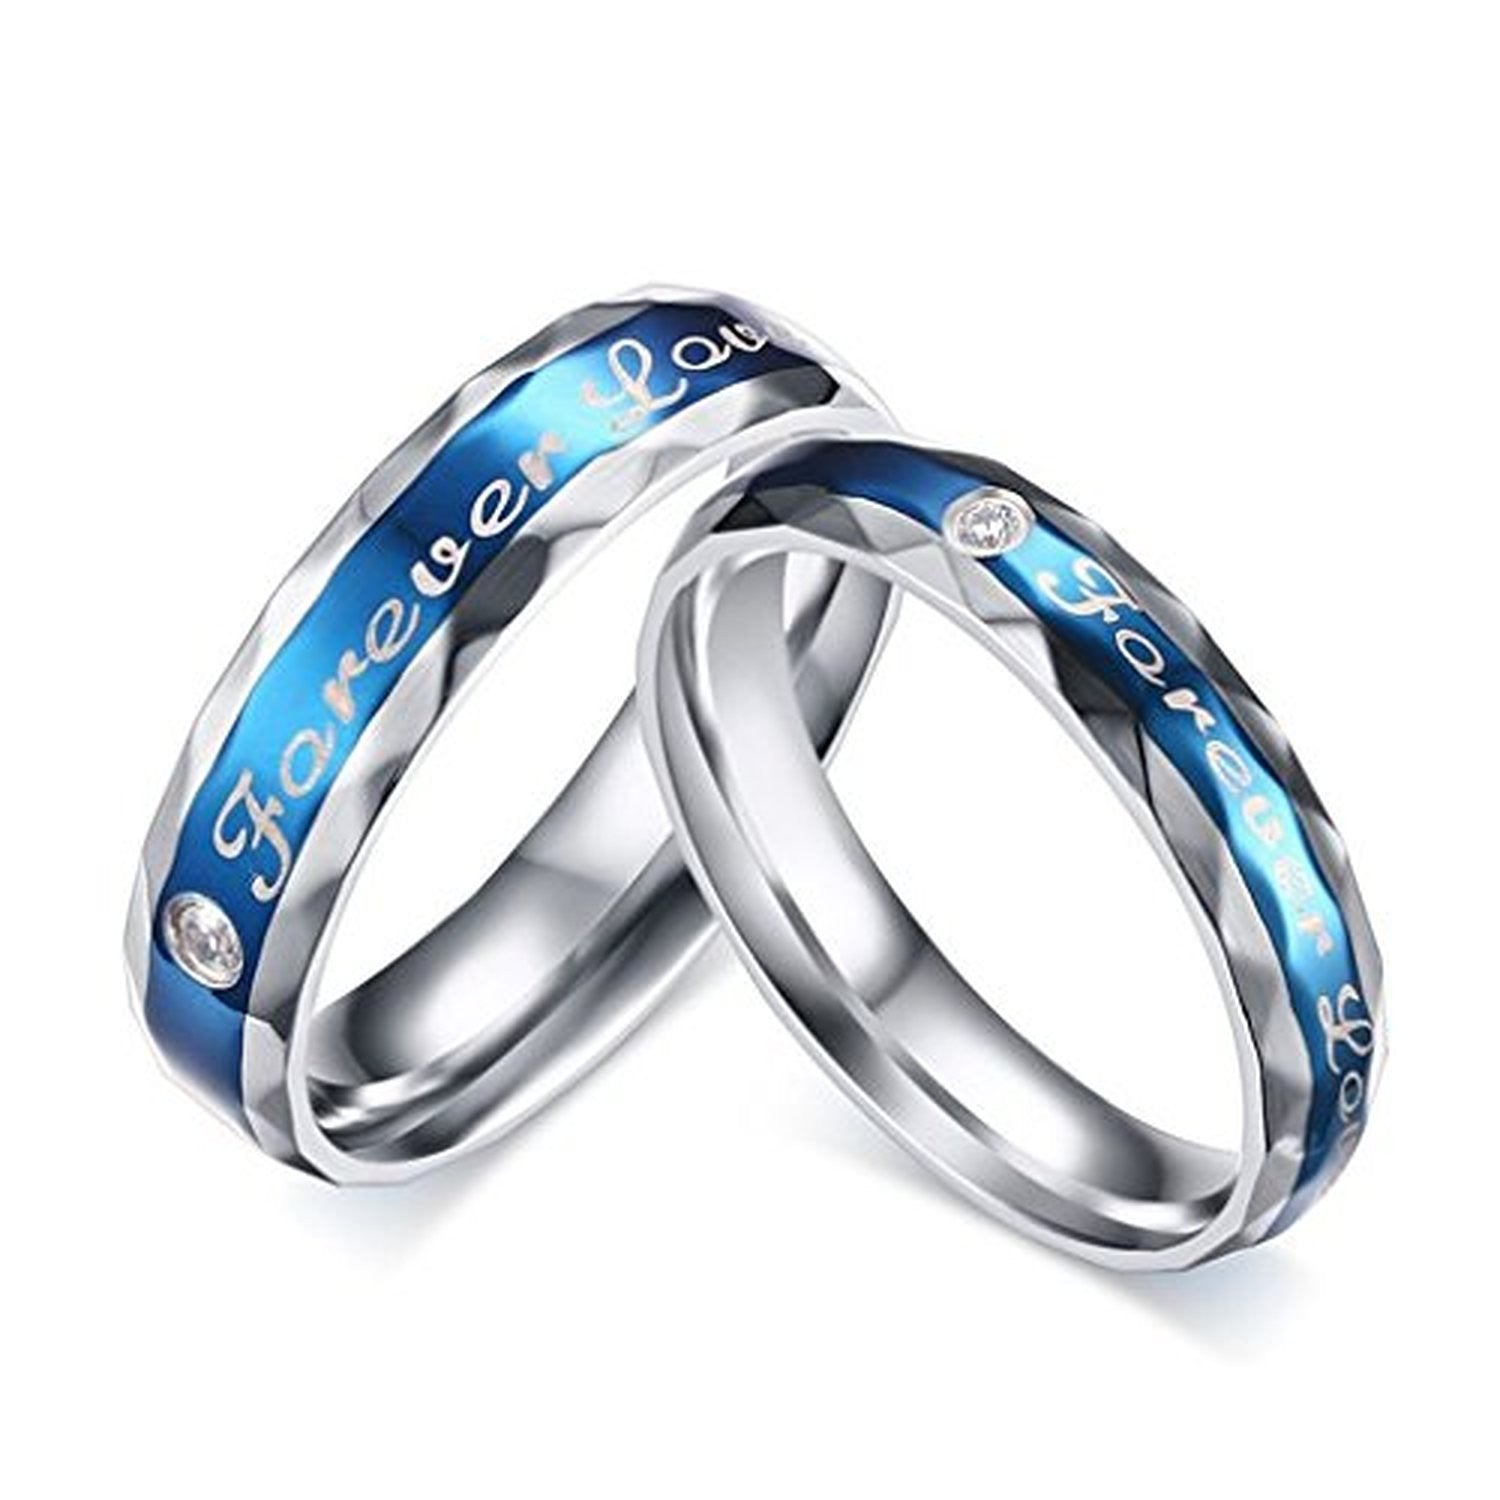 women band s men heart tone stainless ring engagement inblue com couple womens rings amazon wedding promise silver dp jewelry steel